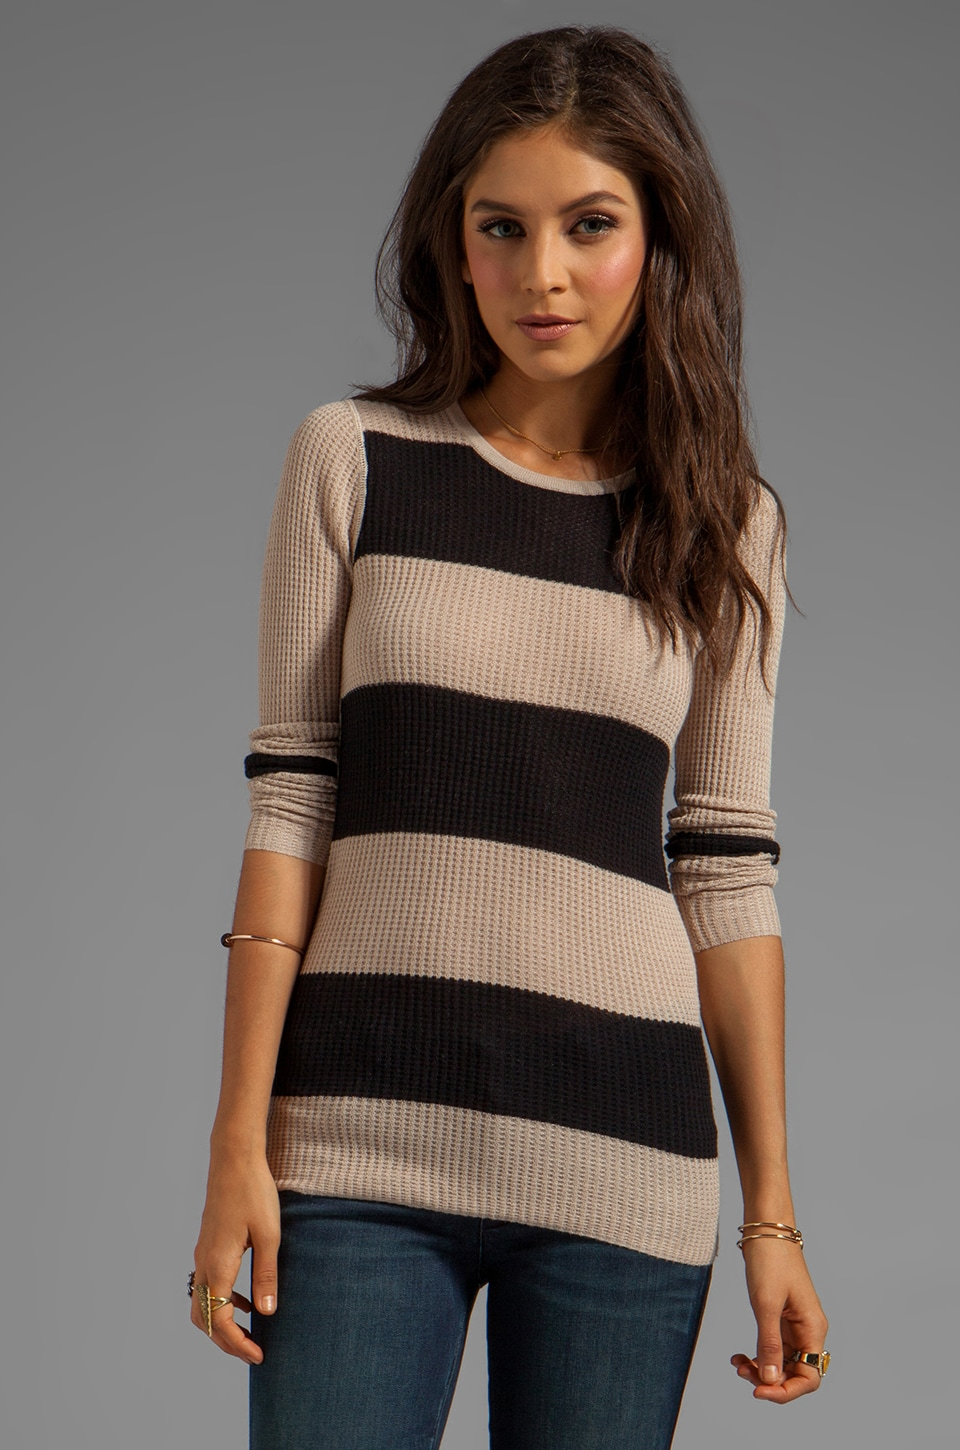 DUFFY Superaire Stripe Sweater in Latte/Black